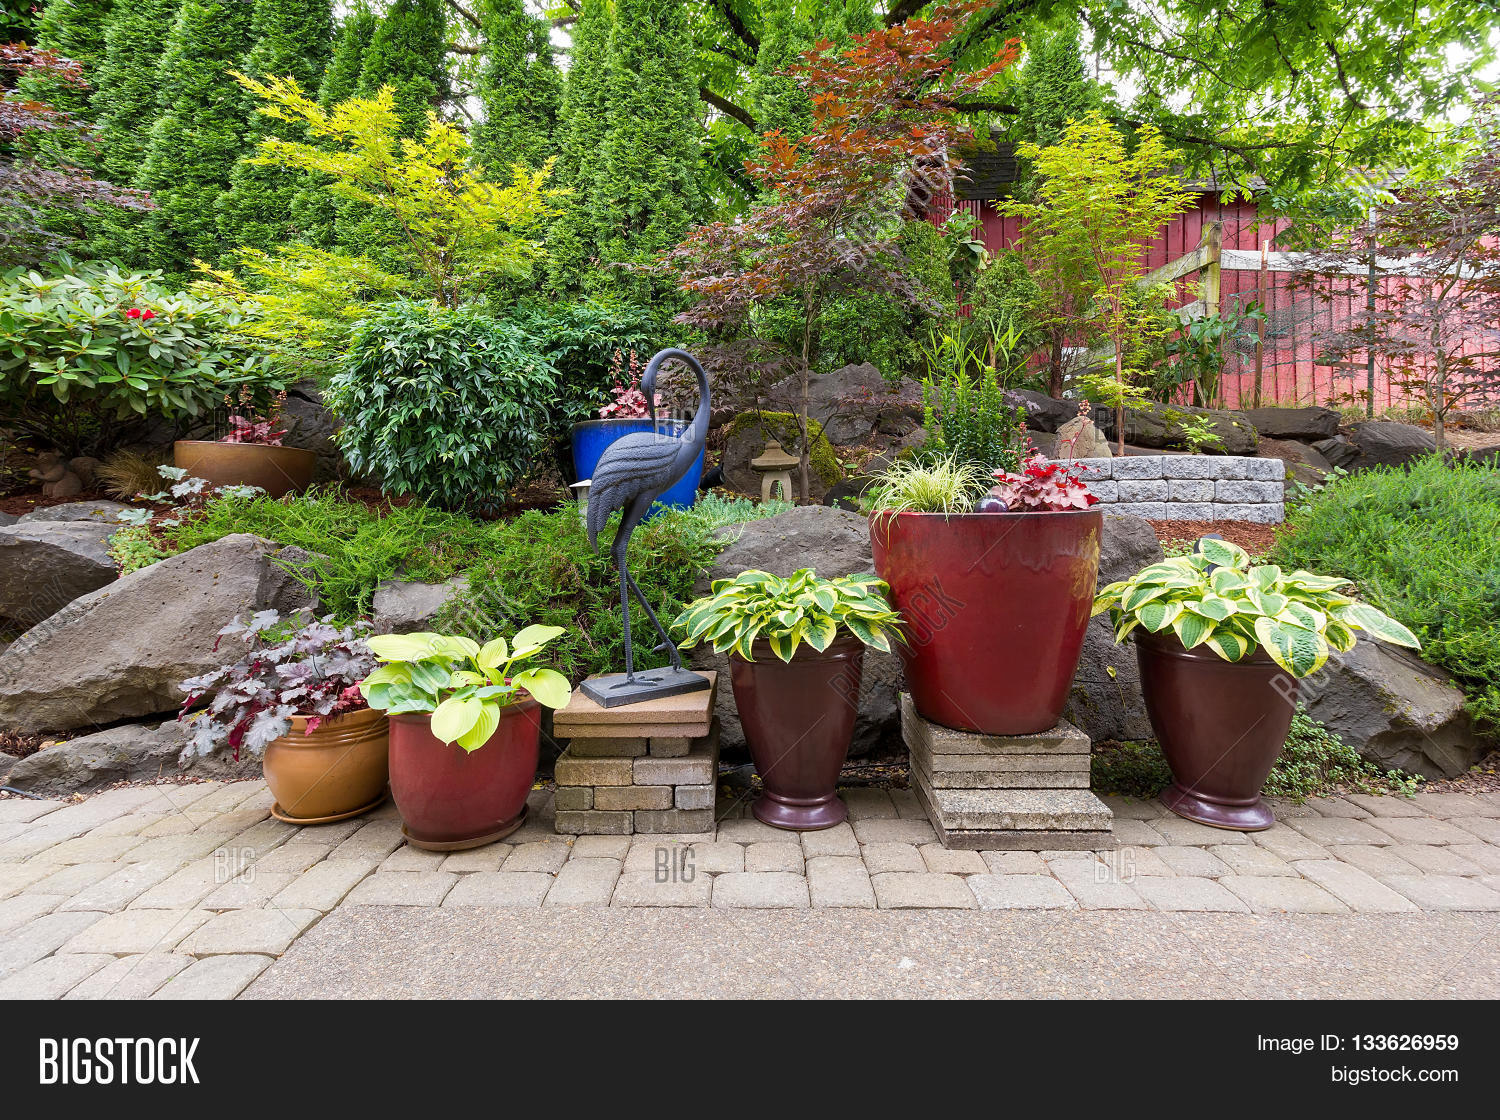 House Garden Backyard Hardscape Image & Photo | Bigstock